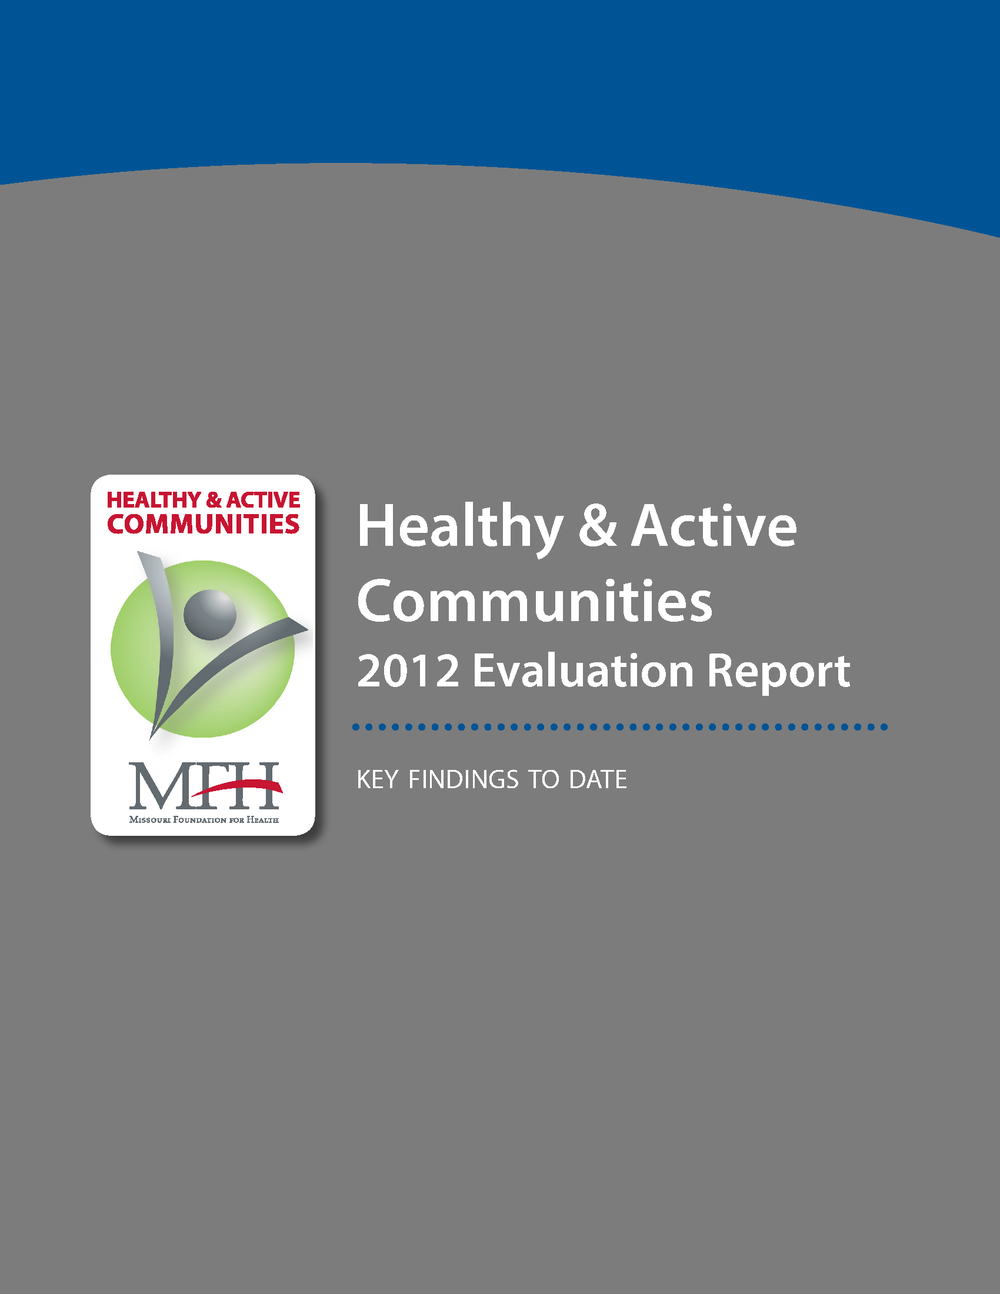 Healthy & Active Communities Evaluation Report 2012